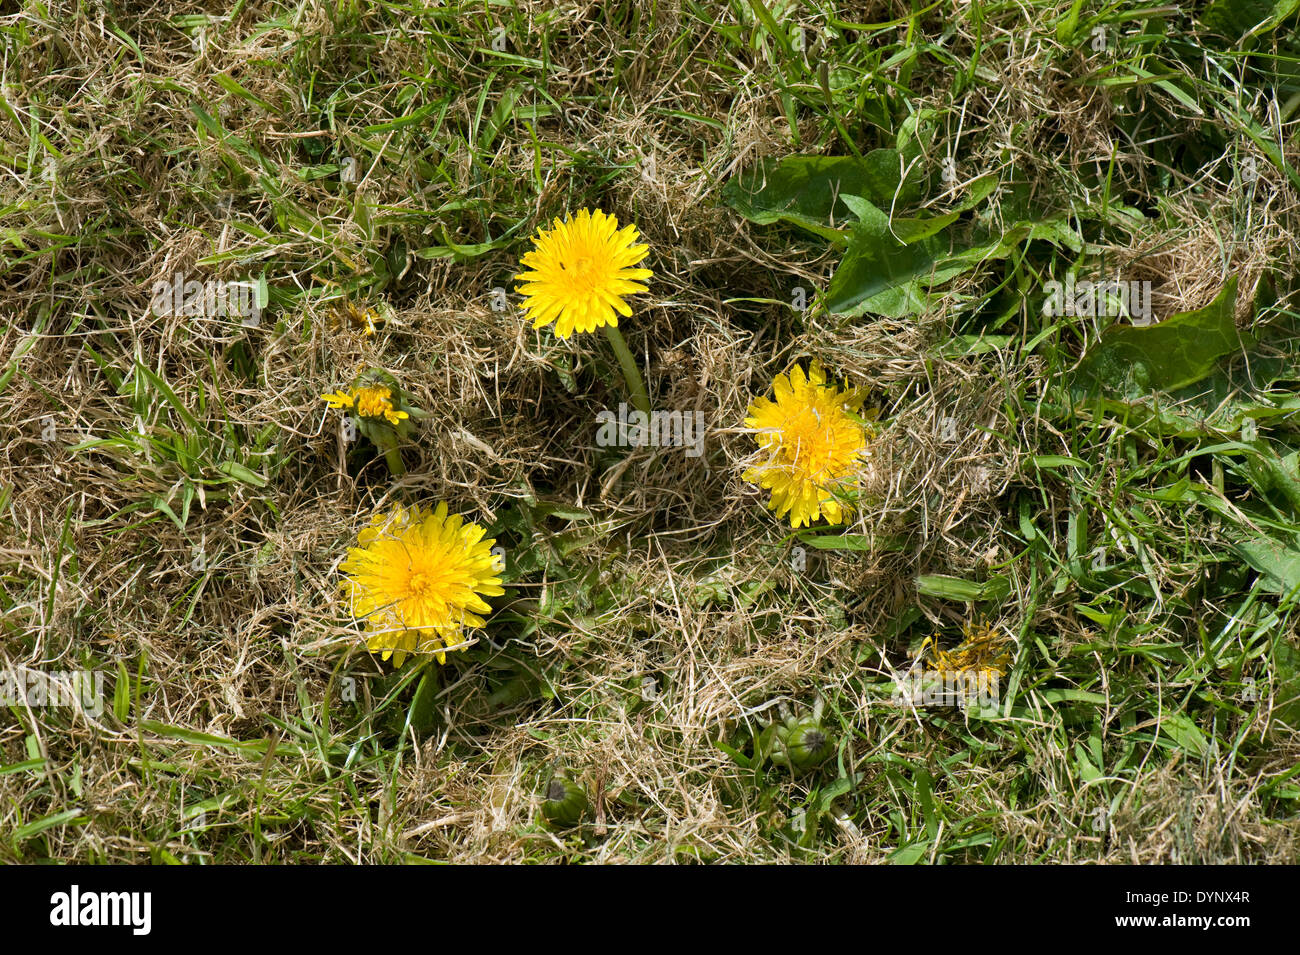 A dandelion, Taraxacum officinale, stuted by mowing flowering rapidly in newly mown grass - Stock Image